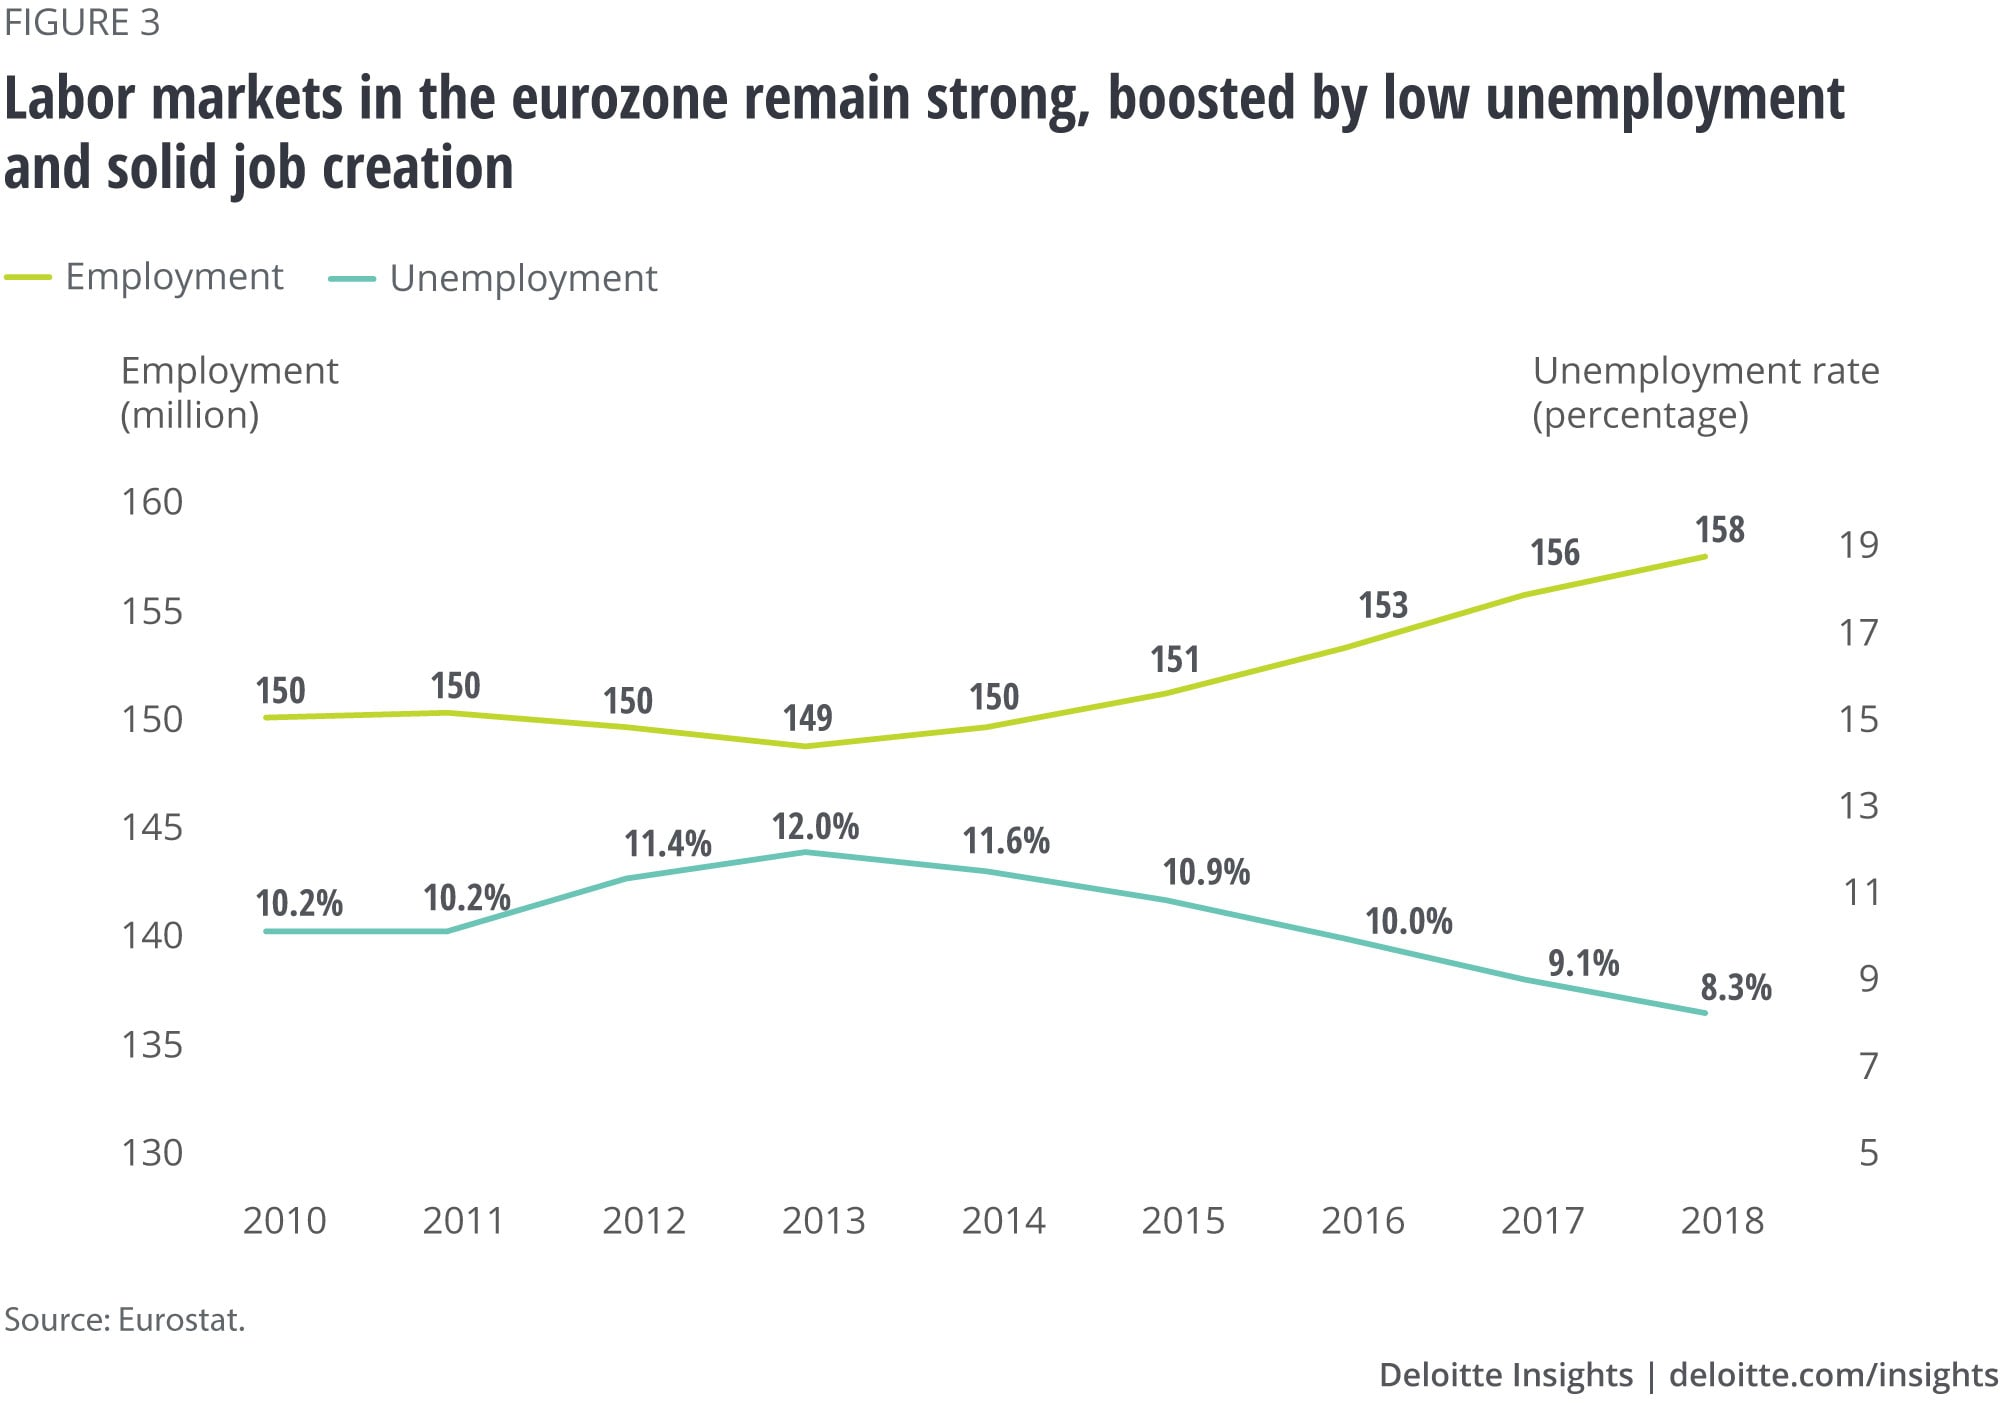 Labor markets in the Eurozone remain strong, boosted by low unemployment and solid job creation